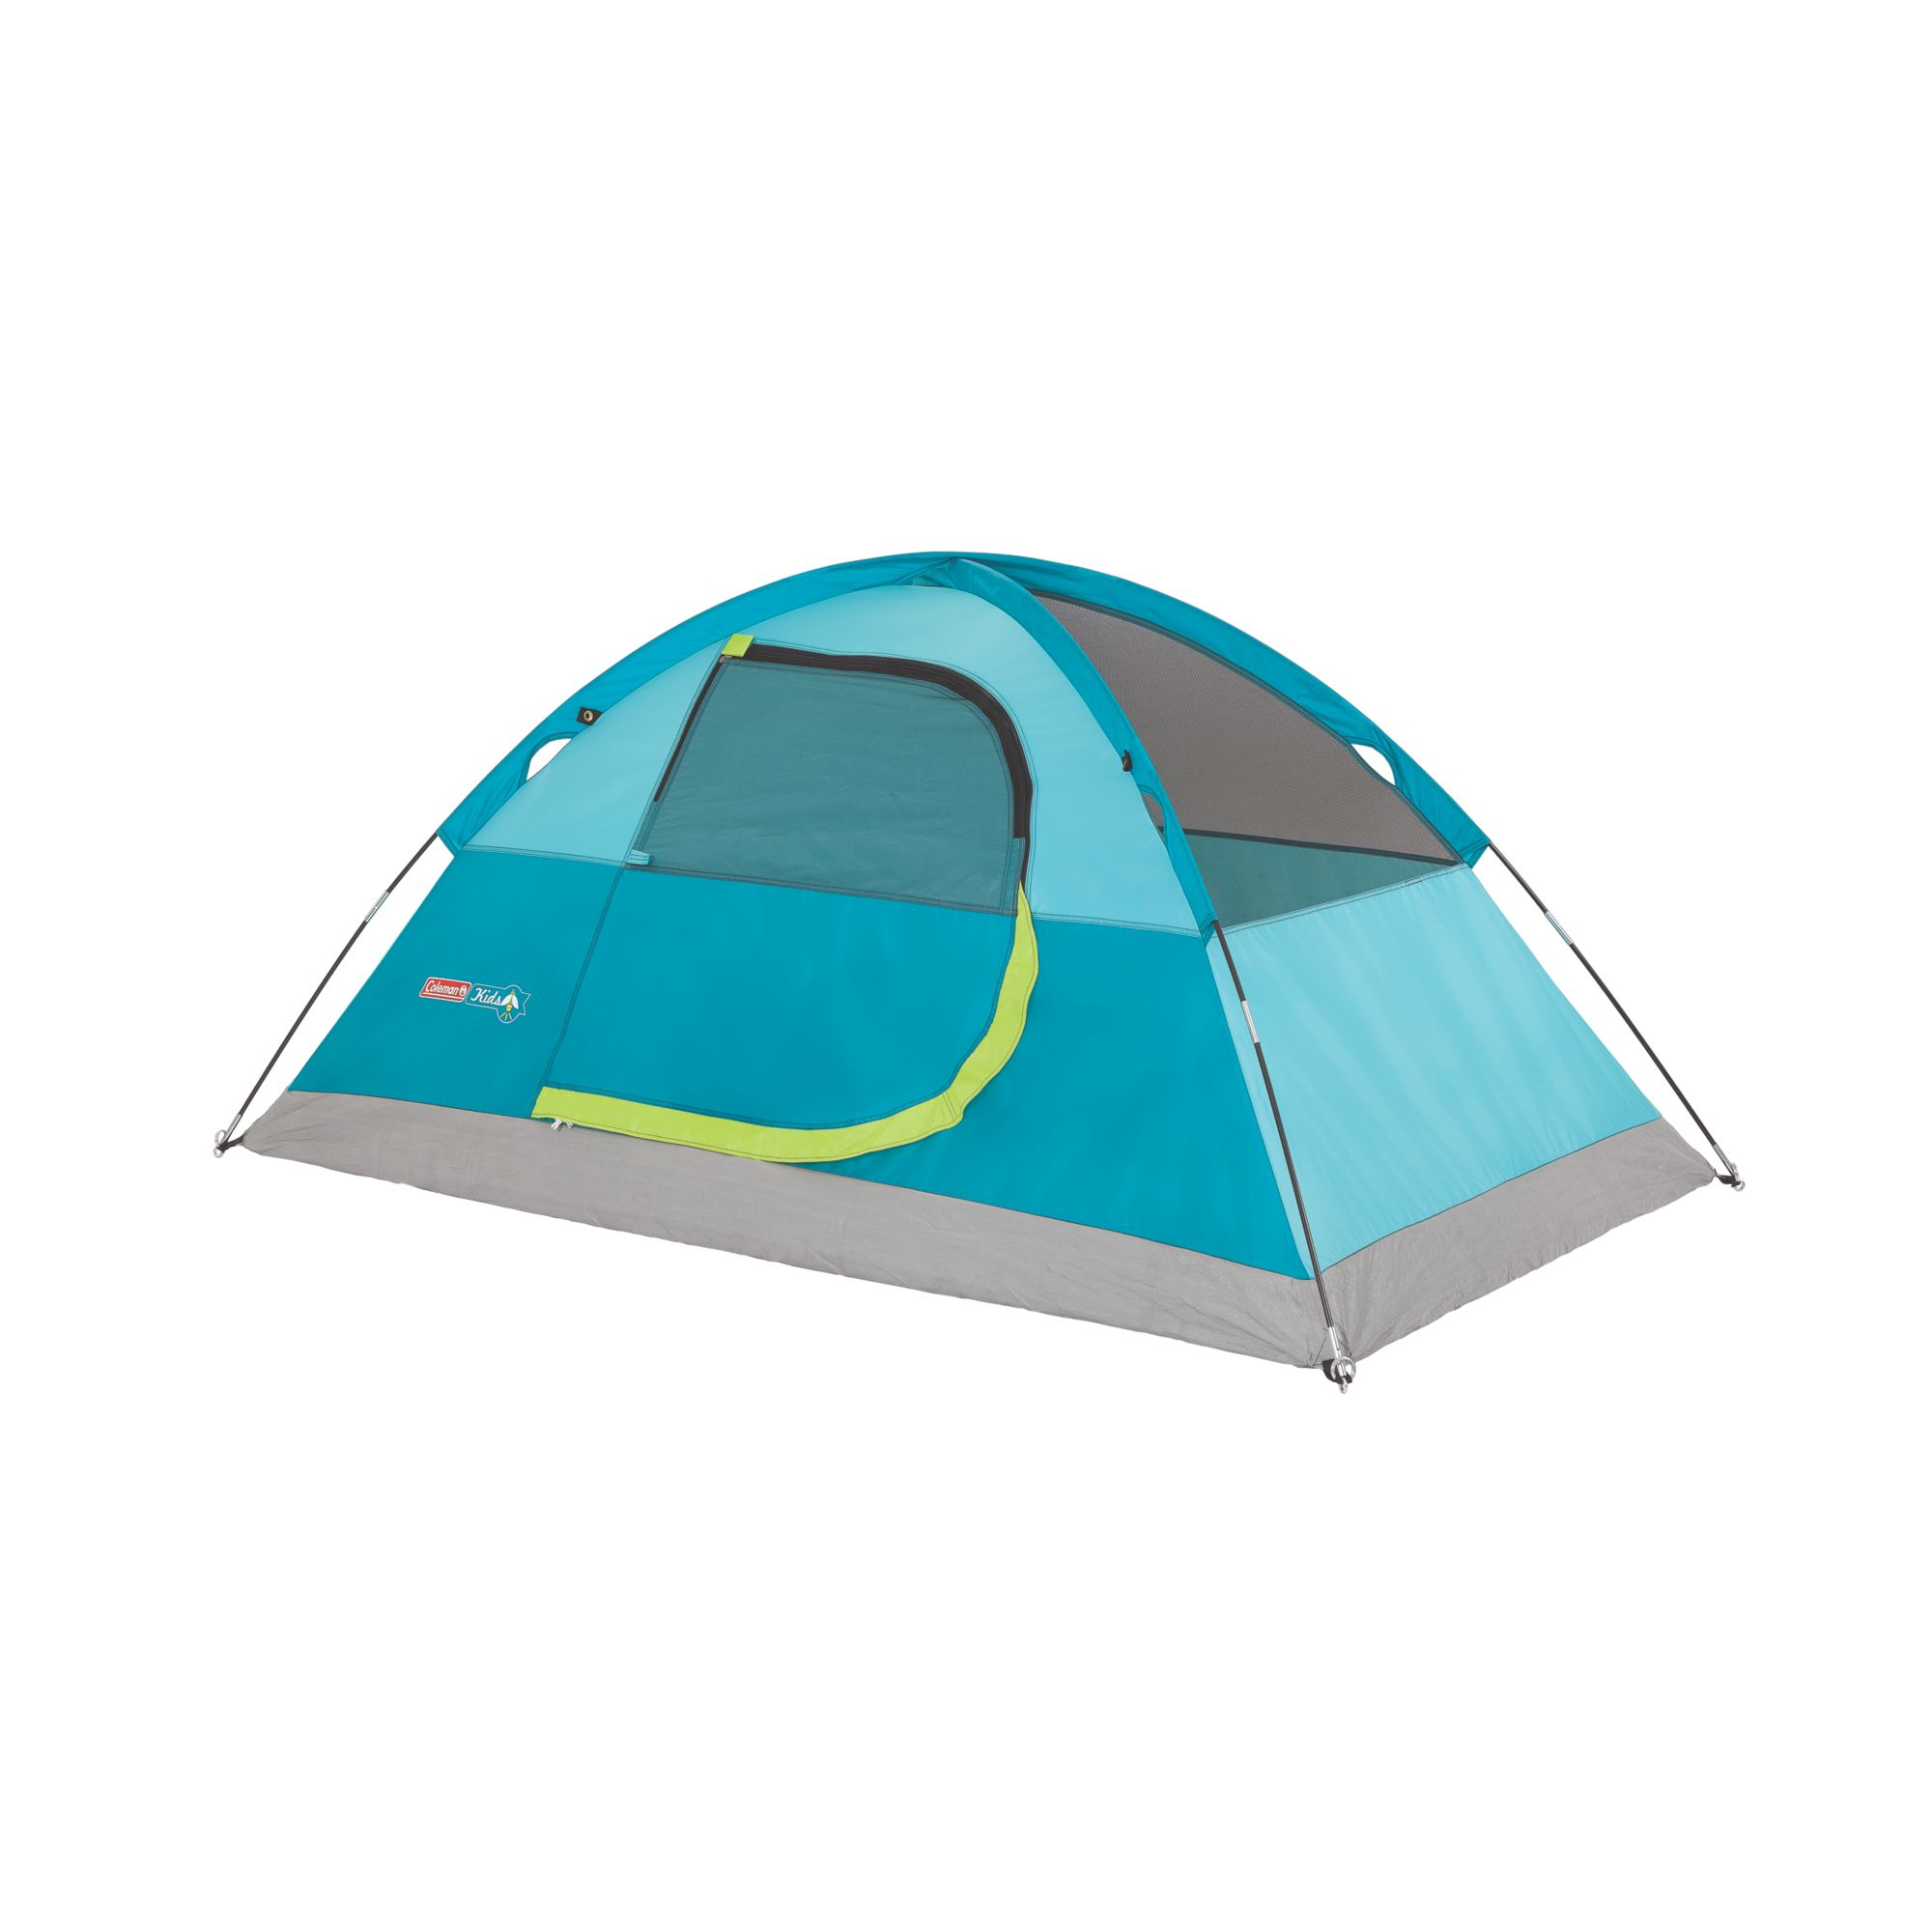 Kids Wonder Lake Dome Tent By Coleman